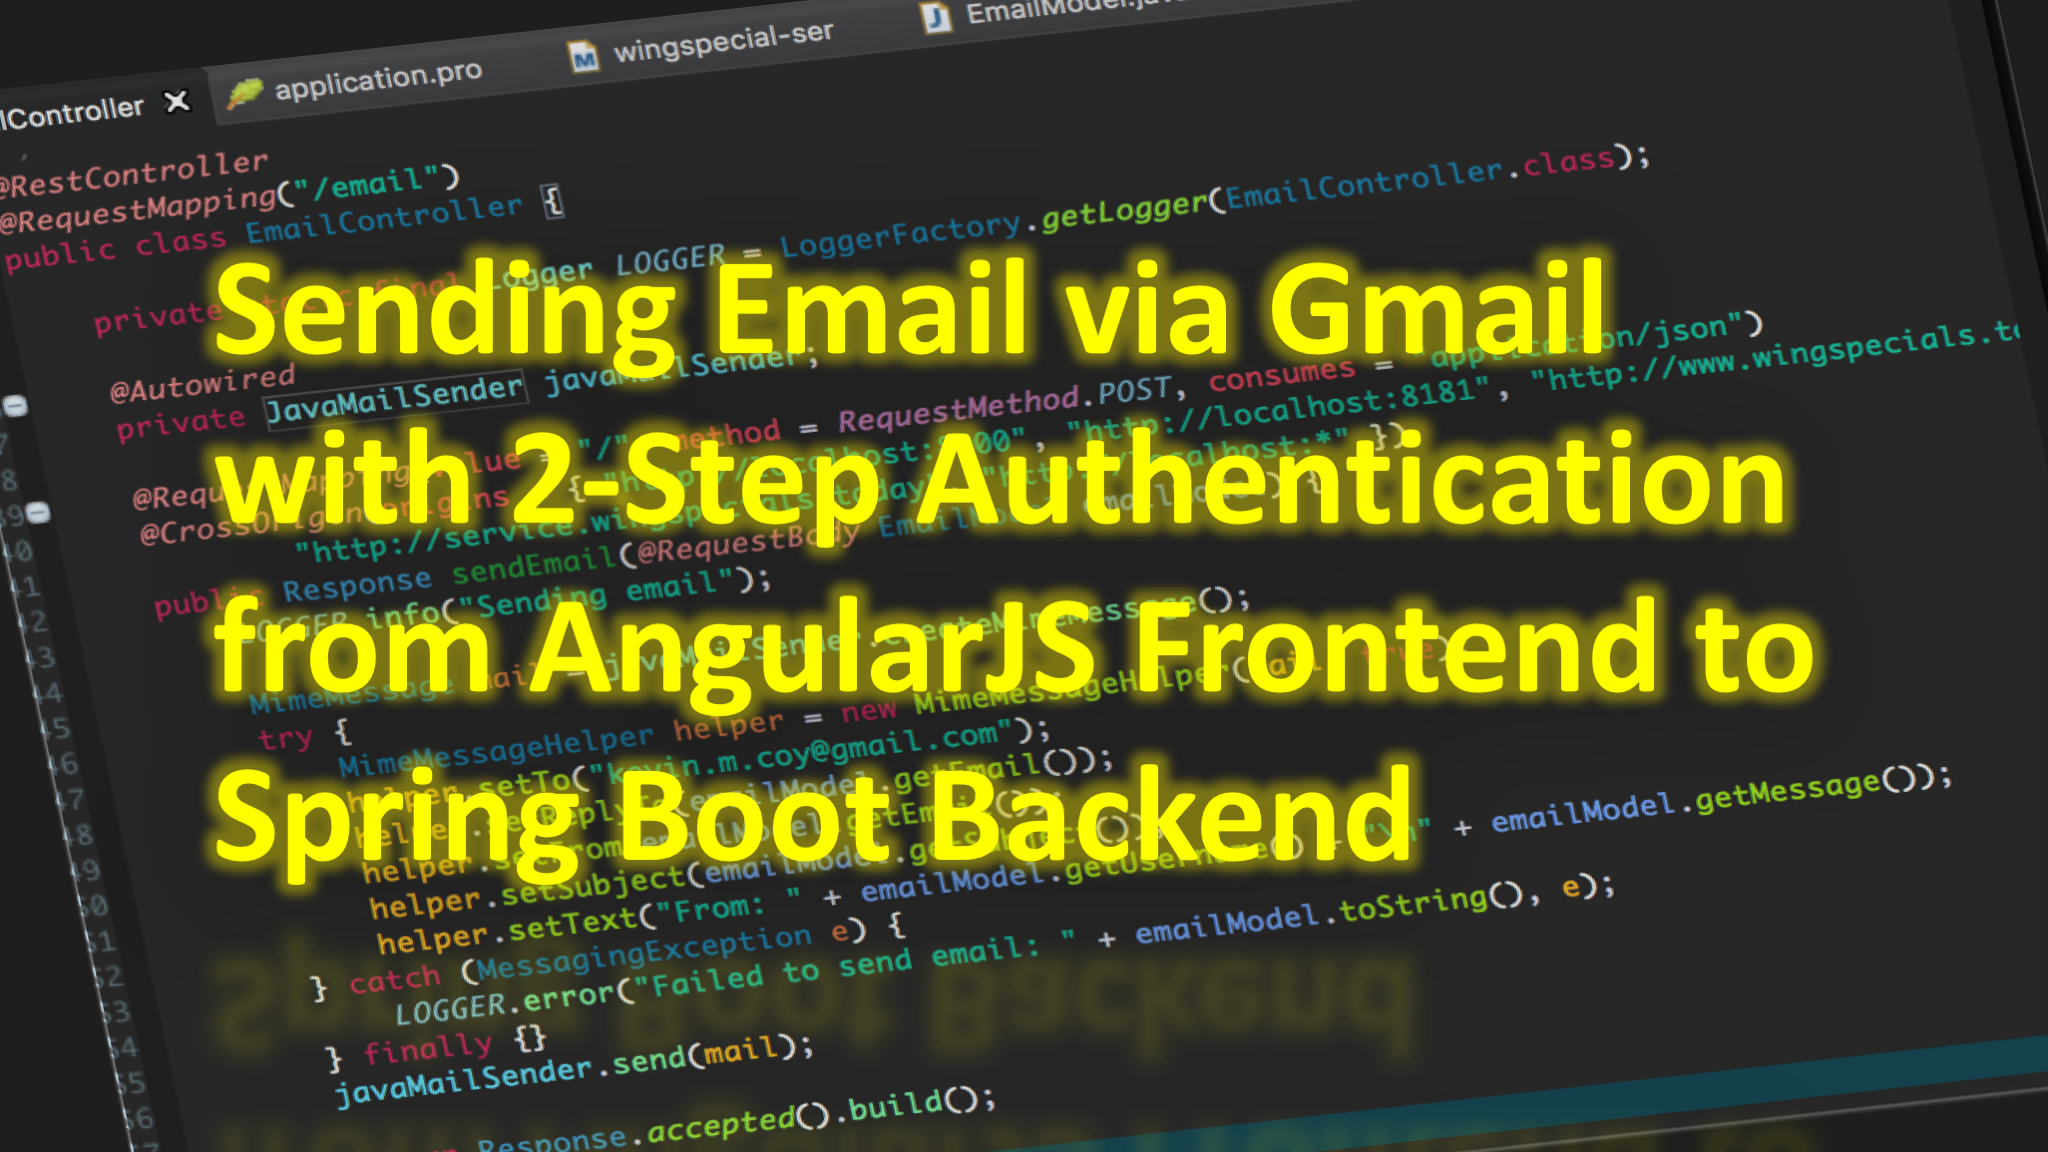 Sending Email via Gmail with 2-Step Authentication from